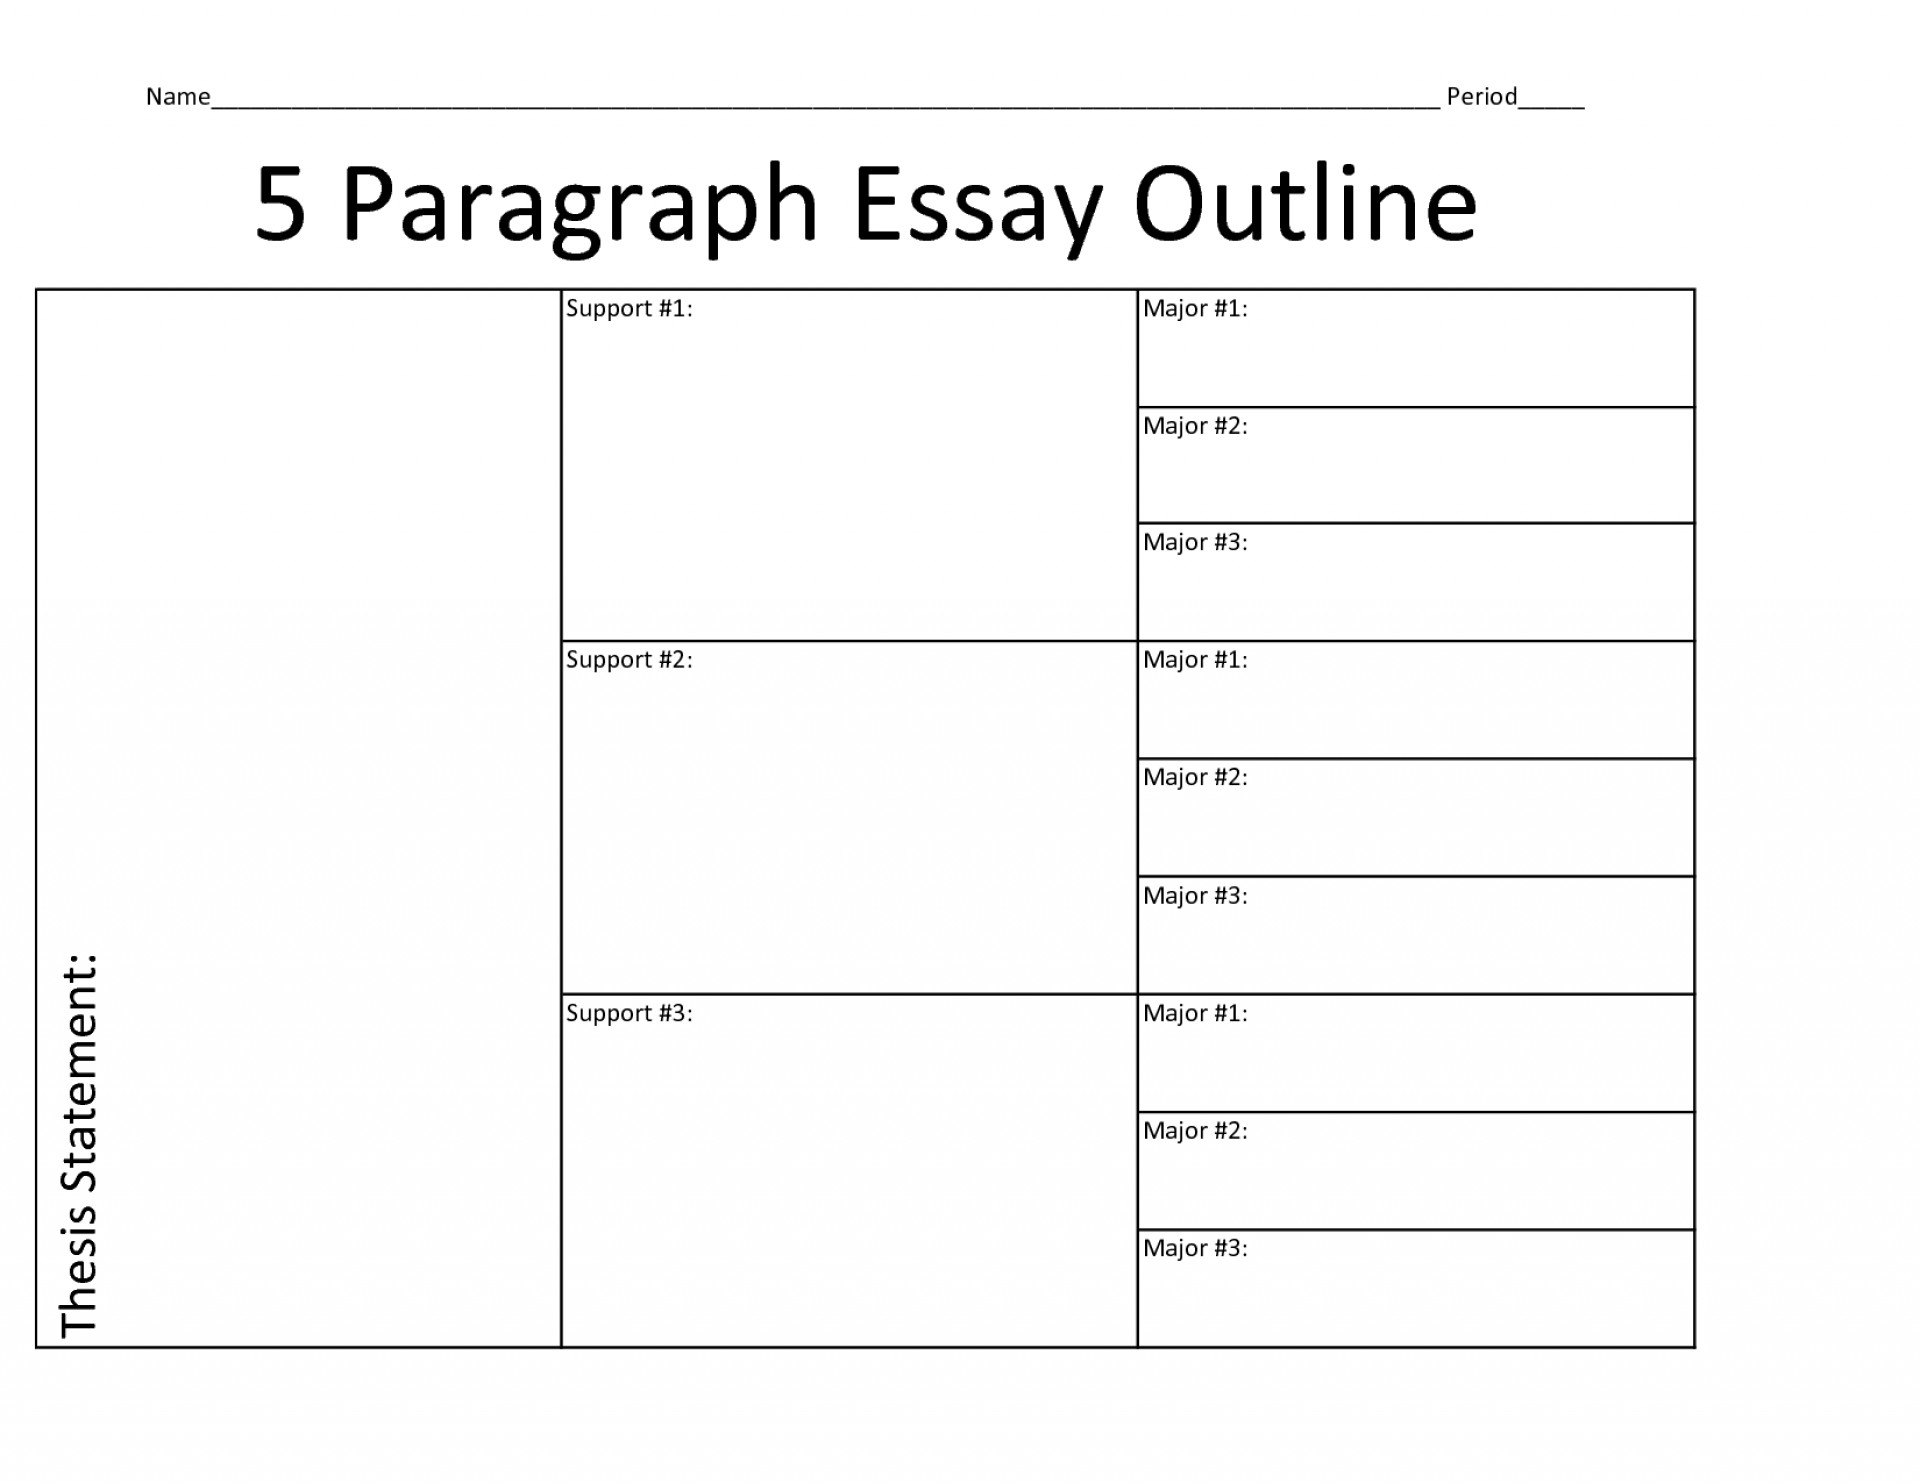 019 Graphic Organizers Executive Functioning Mr Brown039s Paragraph Essay Outline L Amazing 5 Five Pdf Template Printable Topics 5th Grade 1920